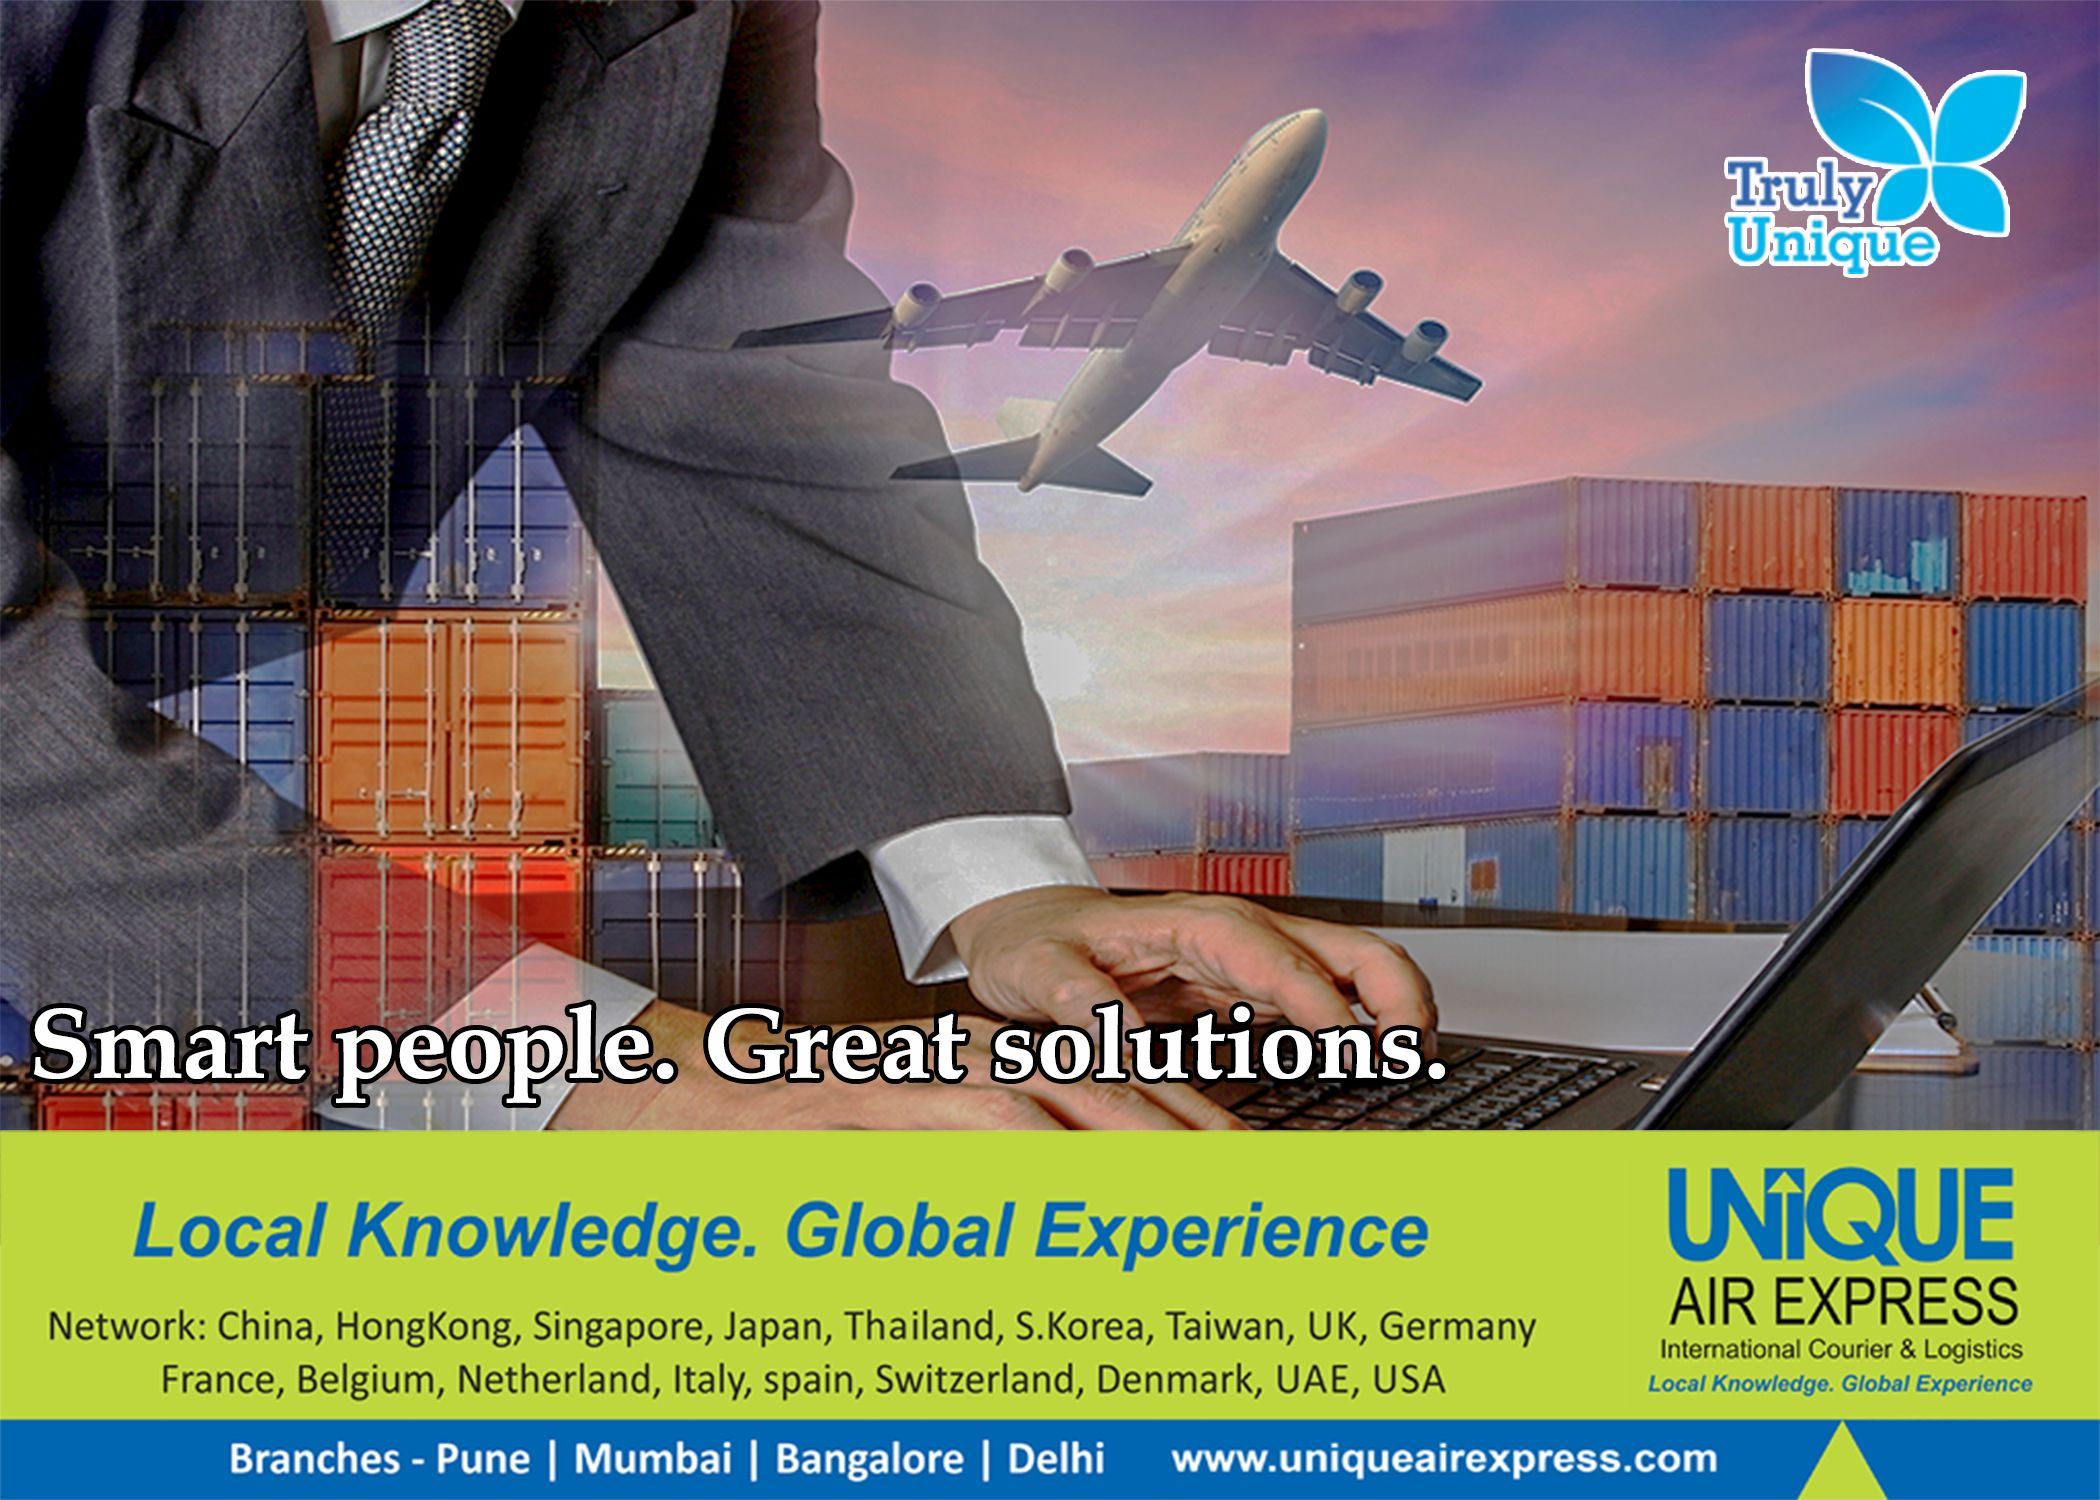 CouriernCargo International courier services, Smart